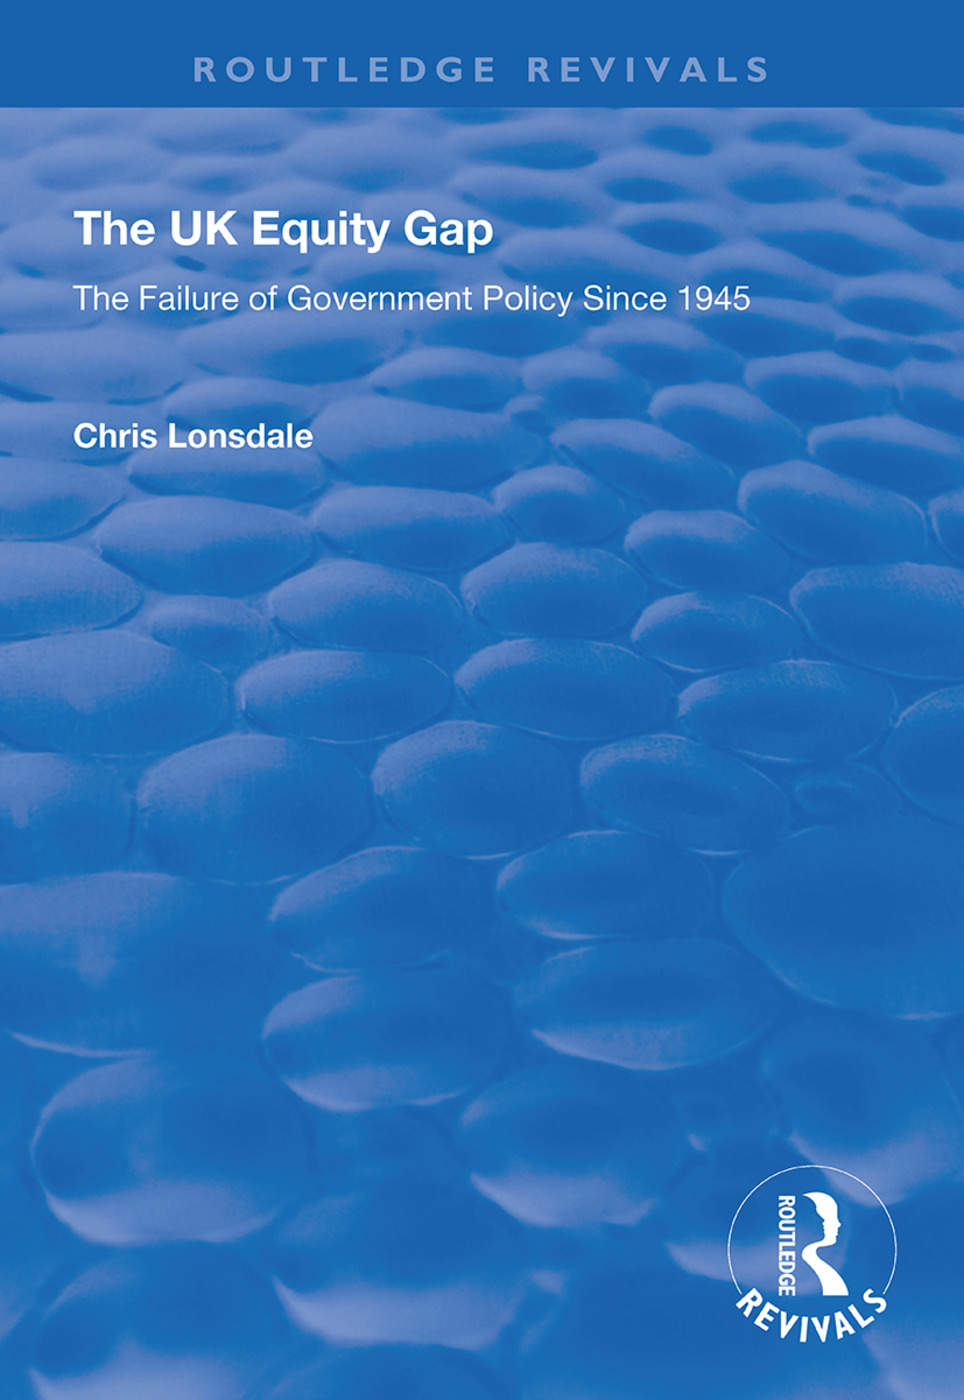 The UK Equity Gap